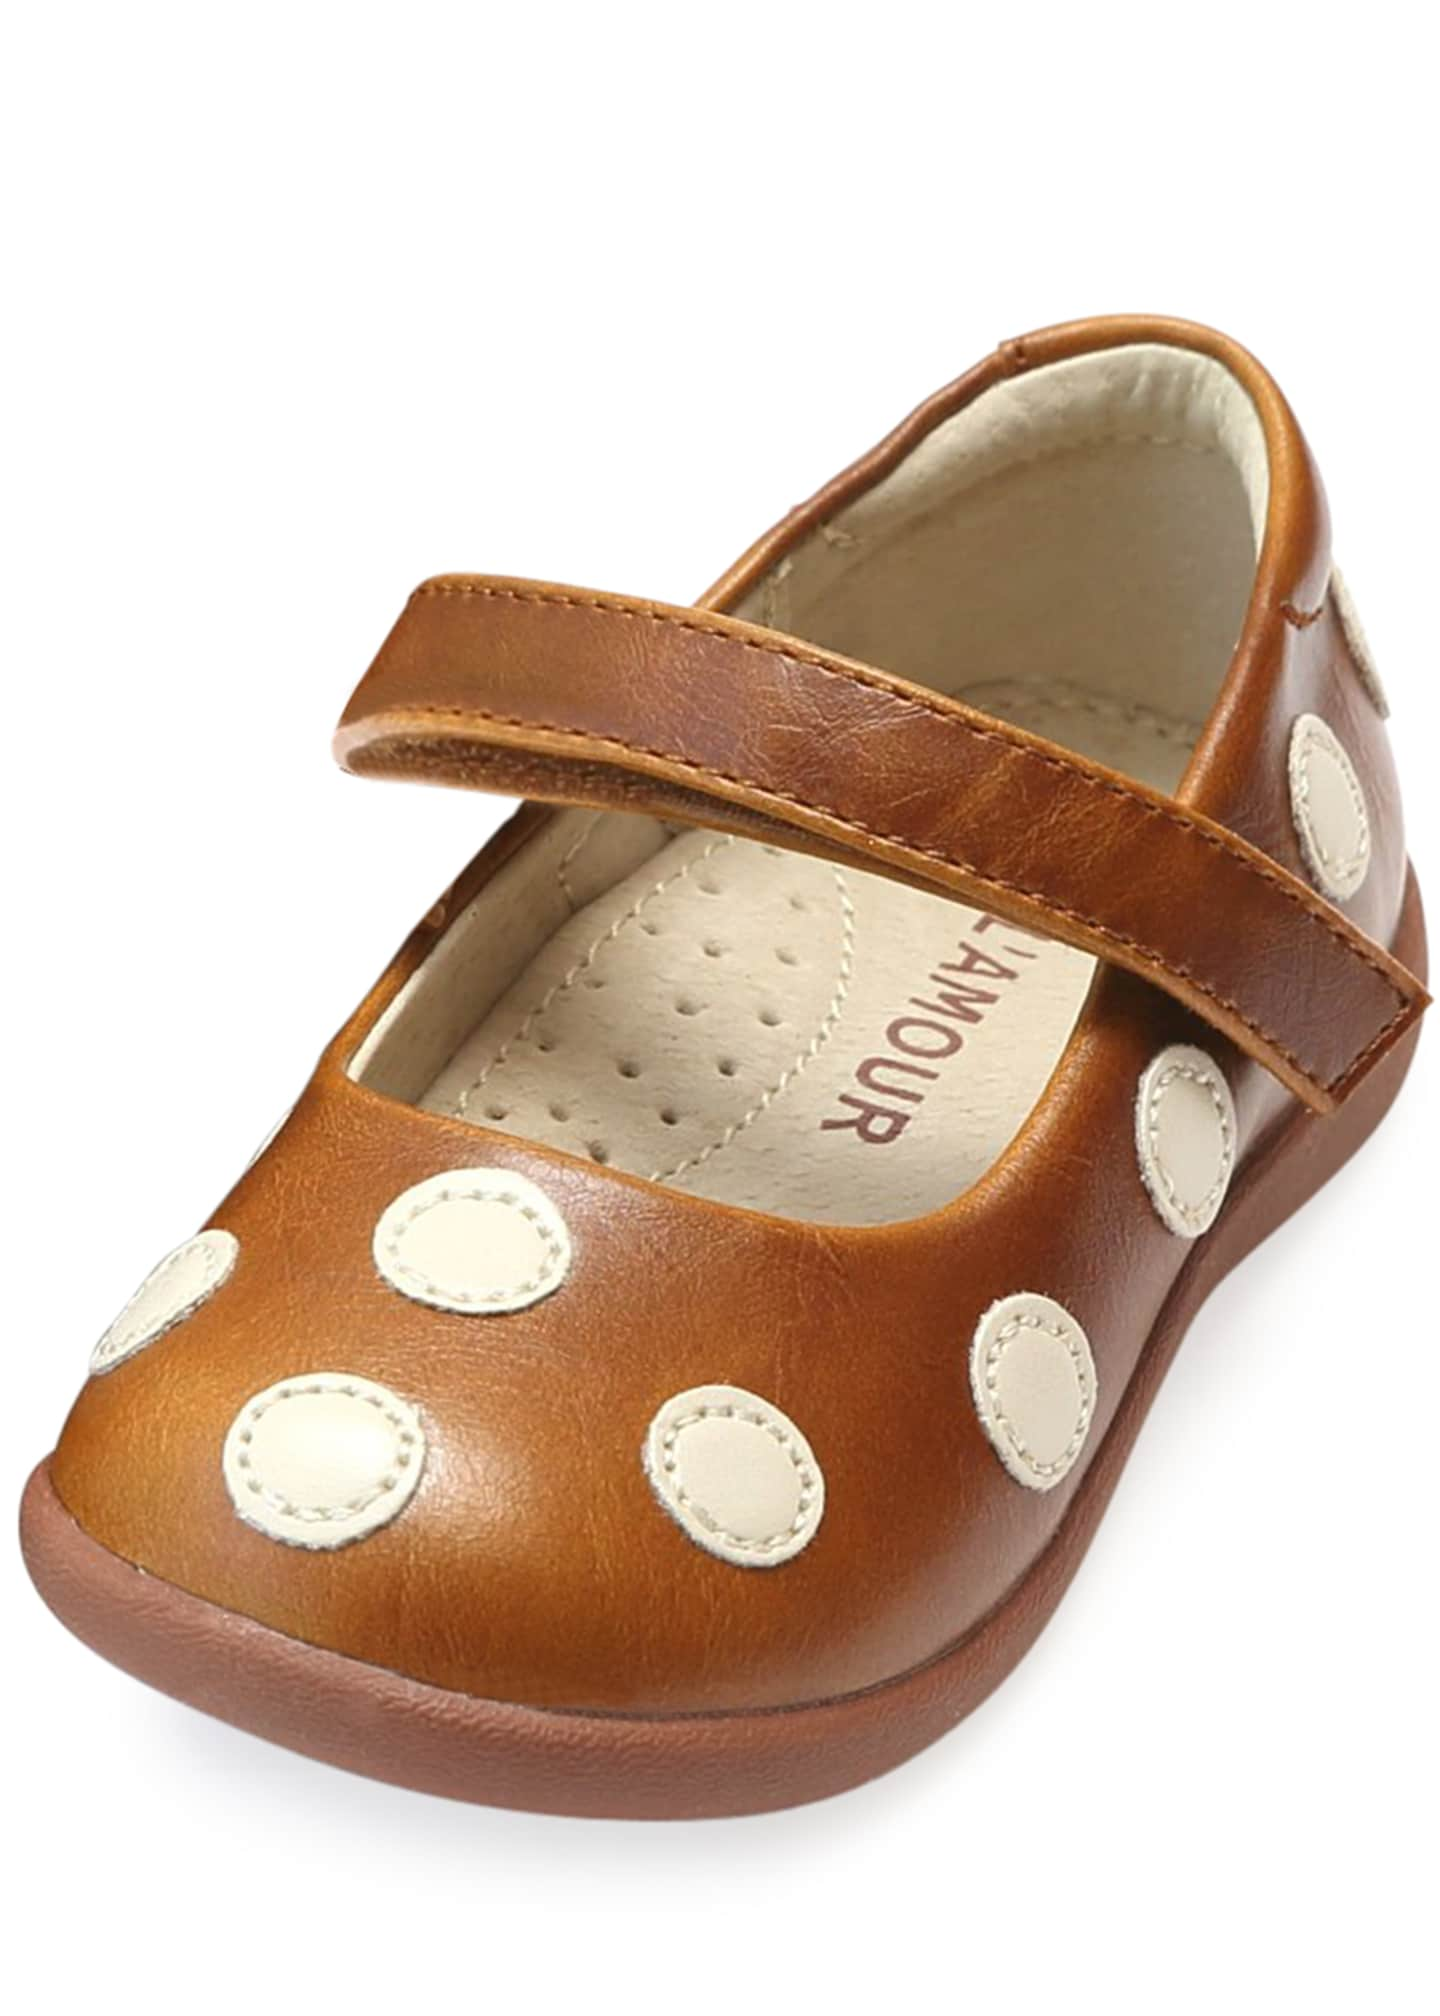 L'Amour Shoes Mara Polka-Dot Leather Mary Jane, Size